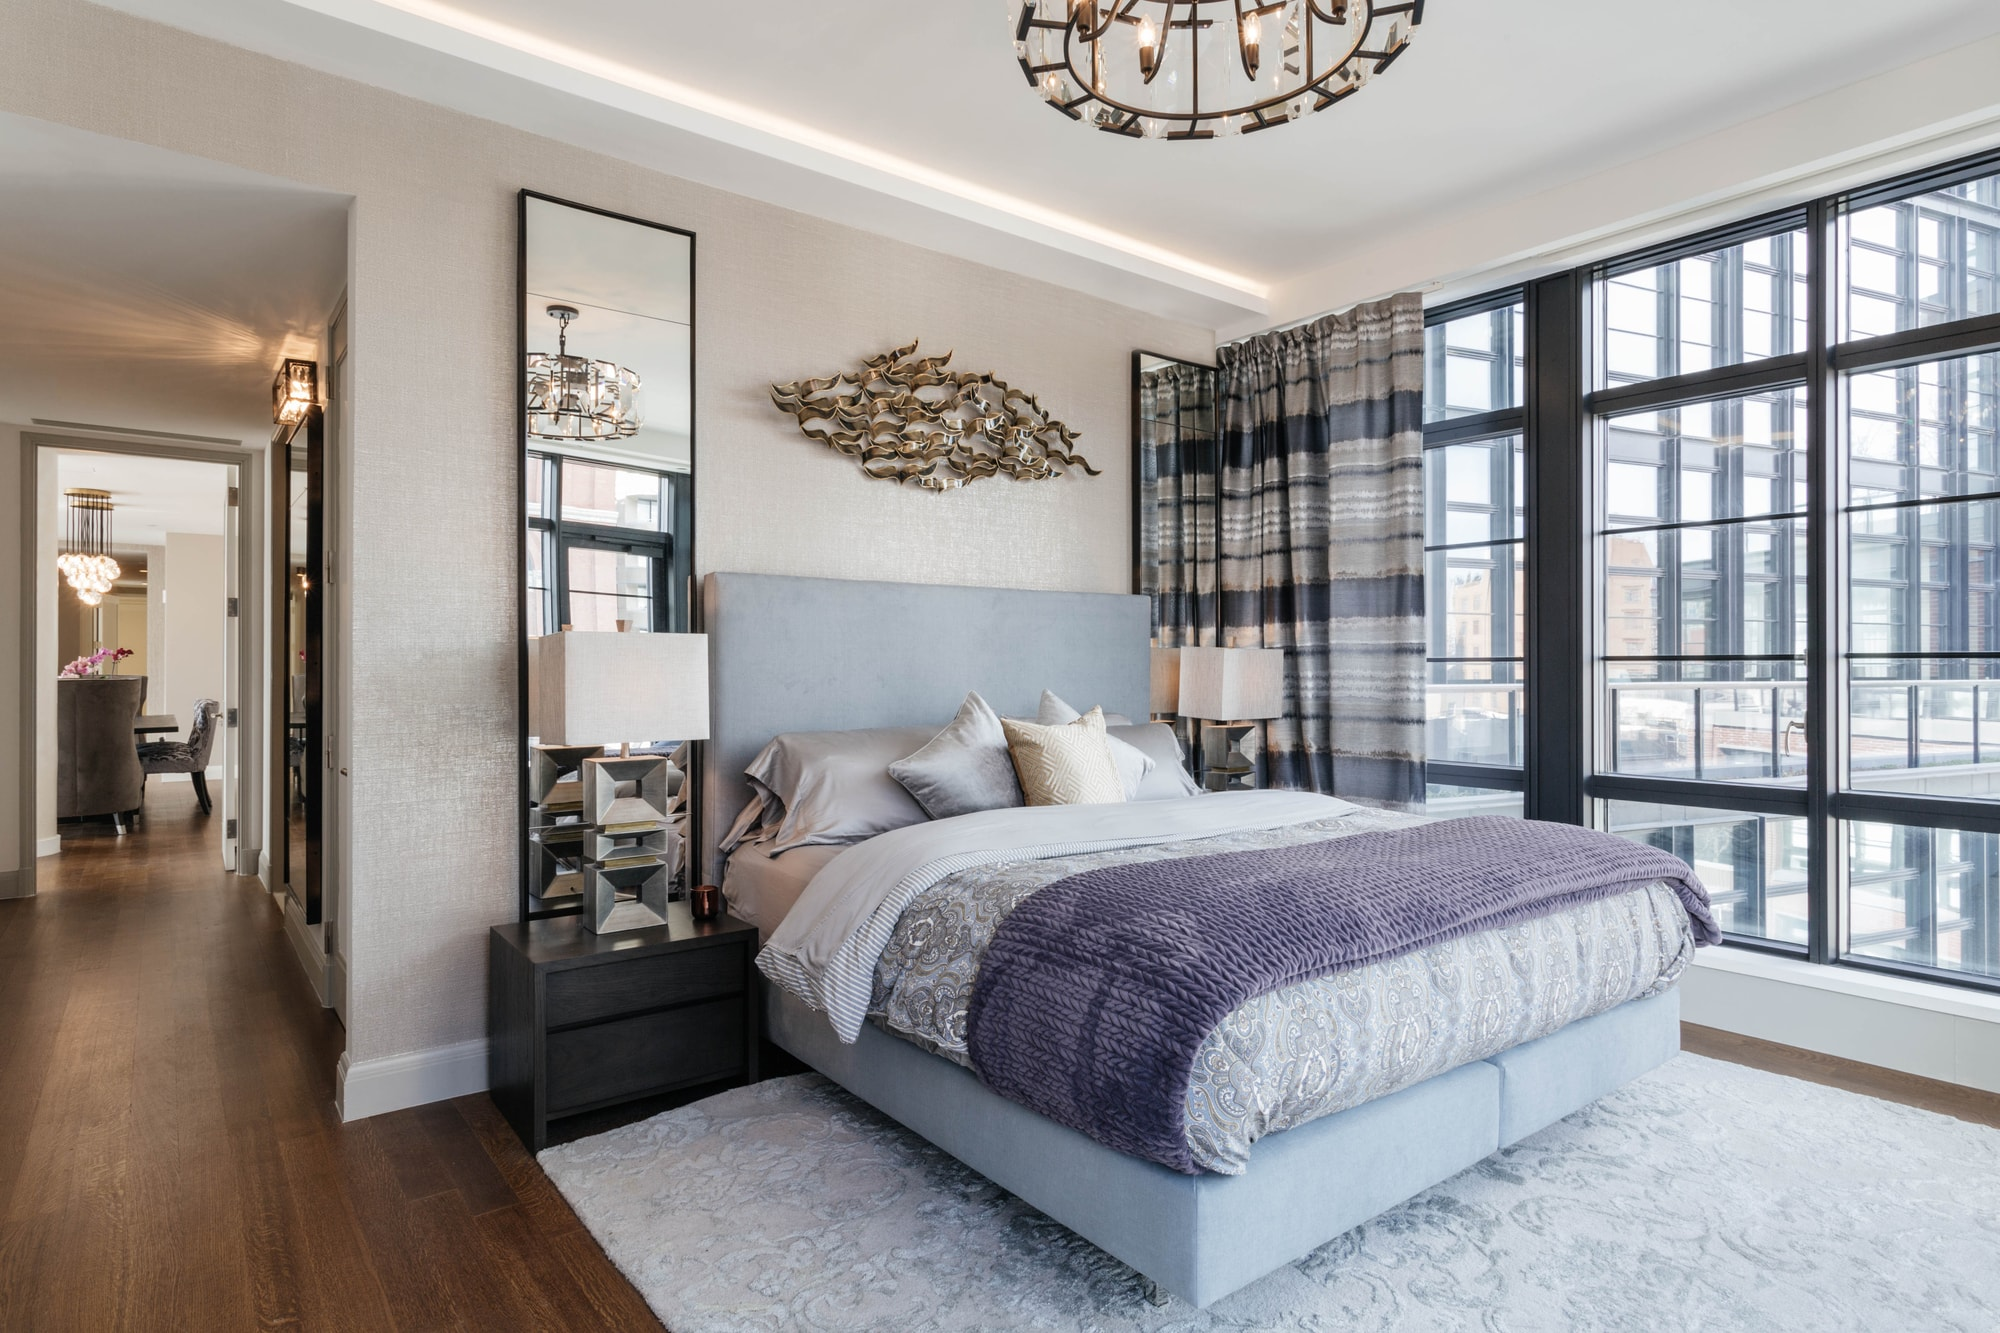 Bright bedroom with soft carpet and luxurious furnishings